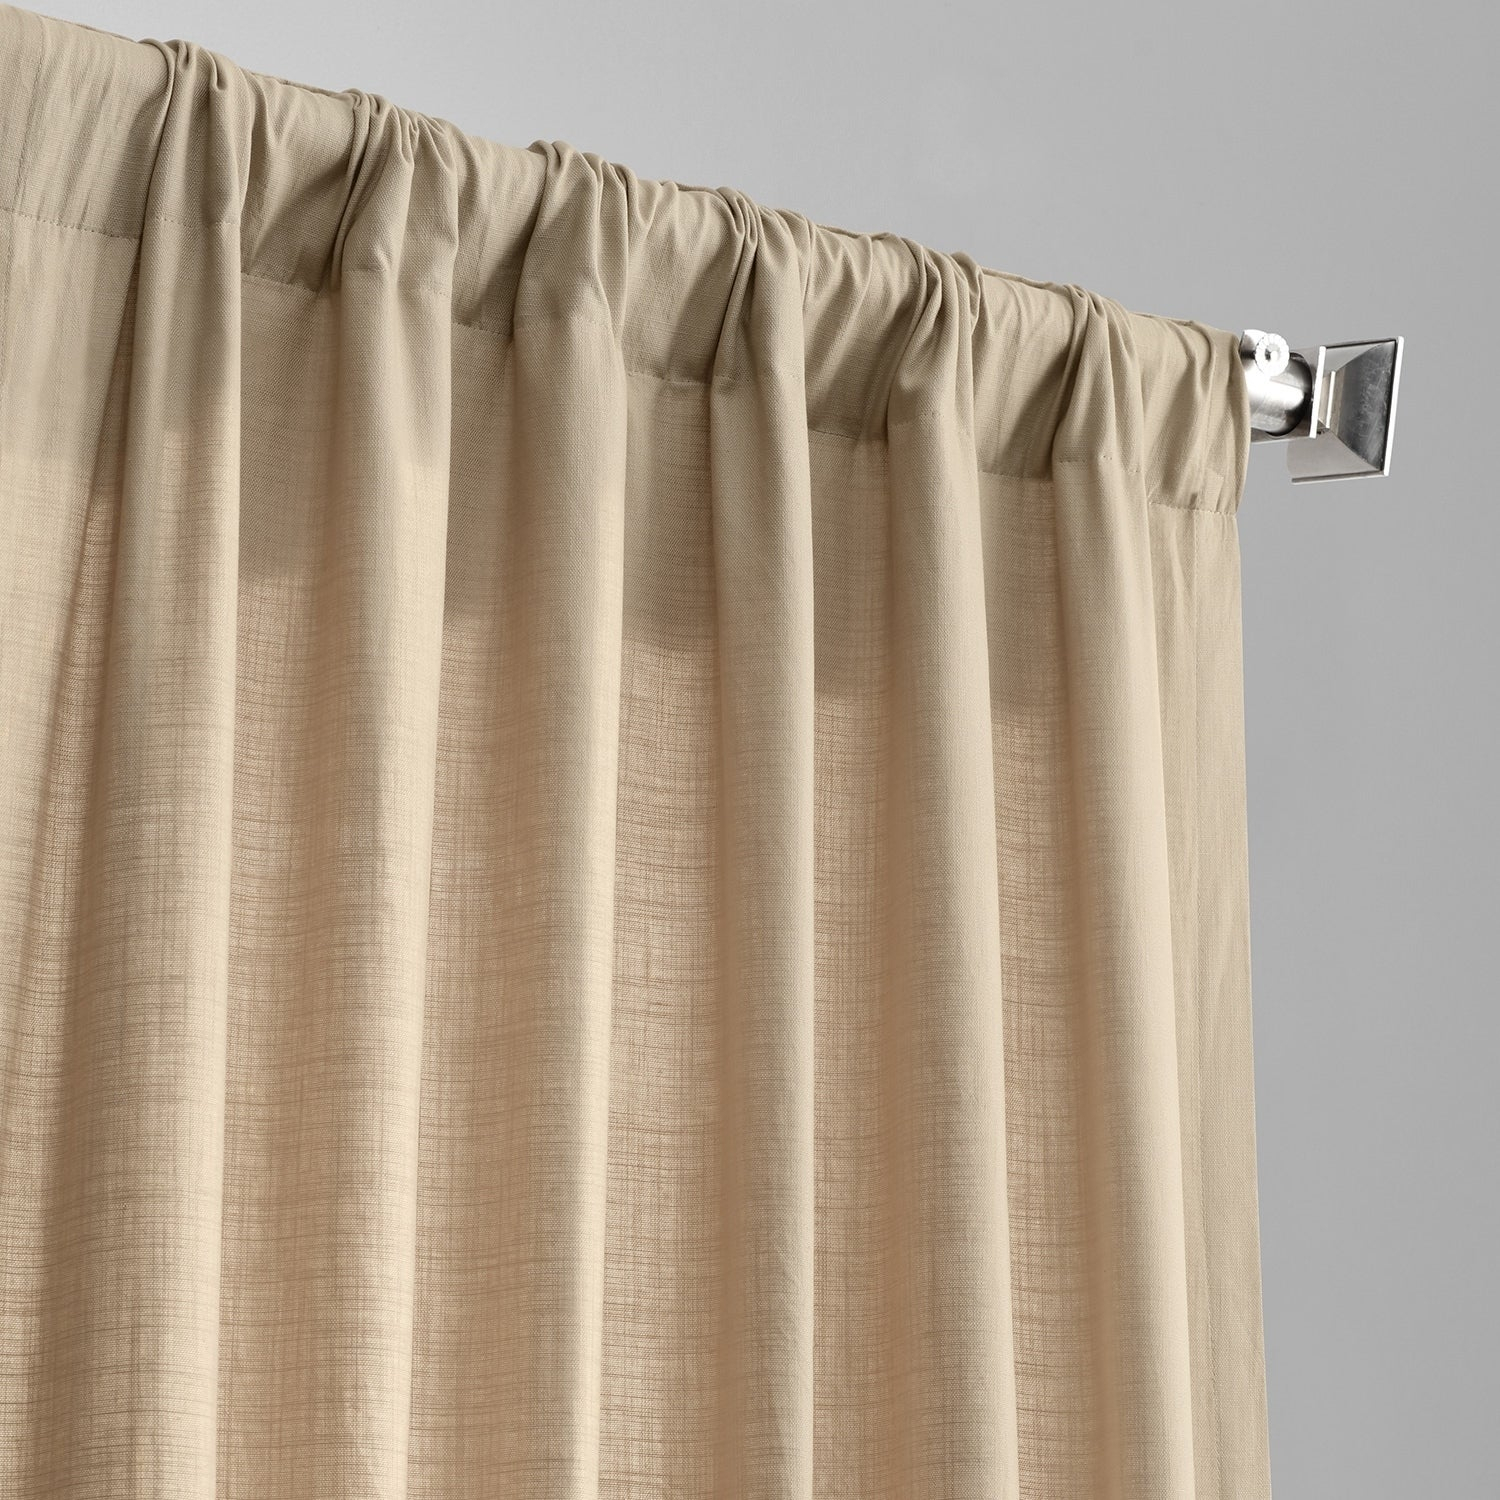 Exclusive Fabrics Solid Country Cotton Linen Weave Curtain Panel Throughout Solid Country Cotton Linen Weave Curtain Panels (View 9 of 30)